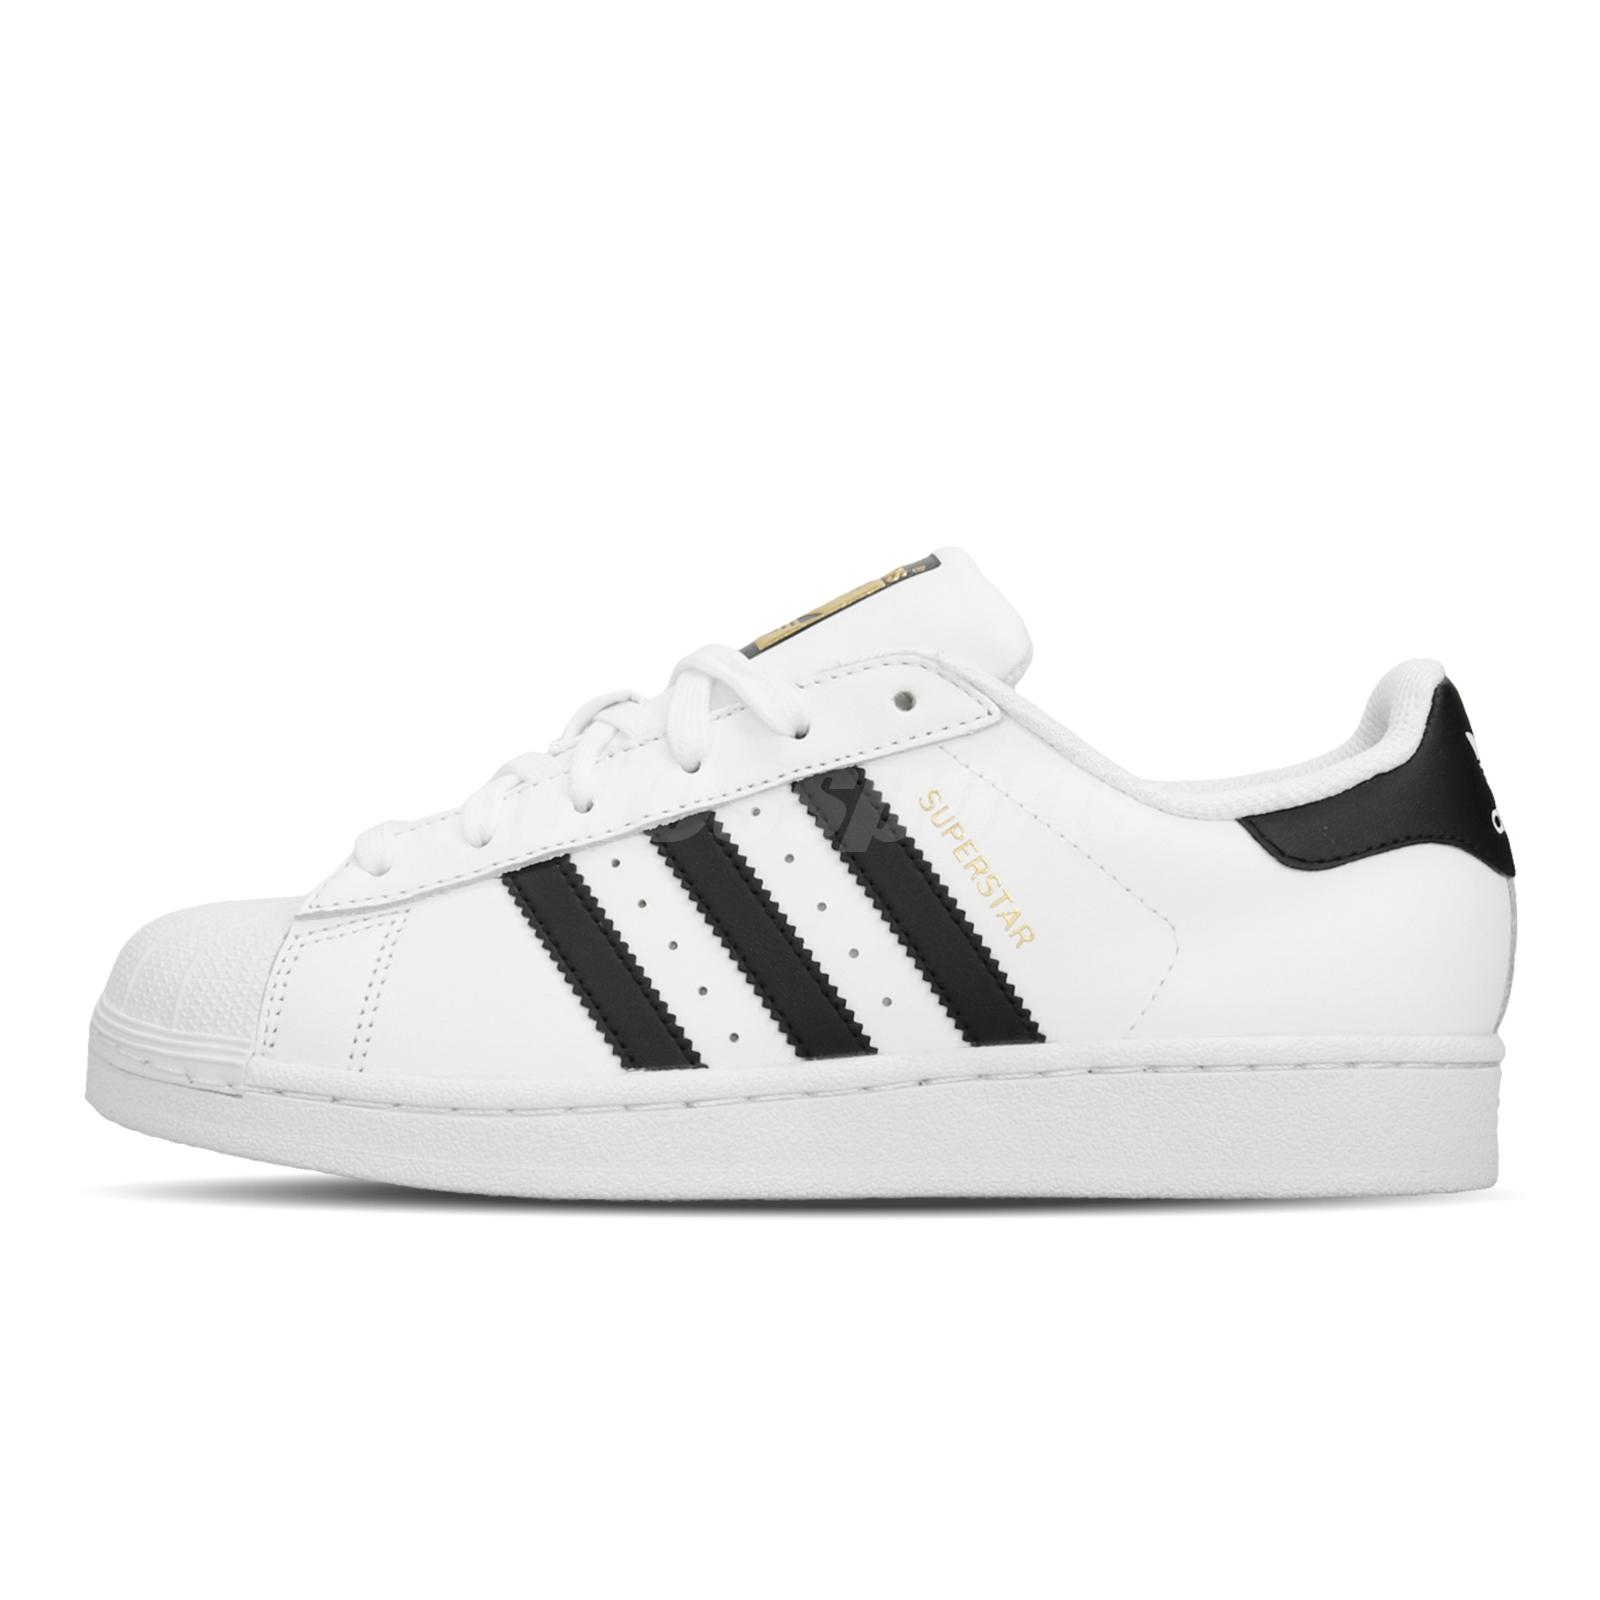 new product f71a9 3d0be adidas Originals Superstar White Black Gold Label Men Women Shoes Sneaker  C77124 - tualu.org